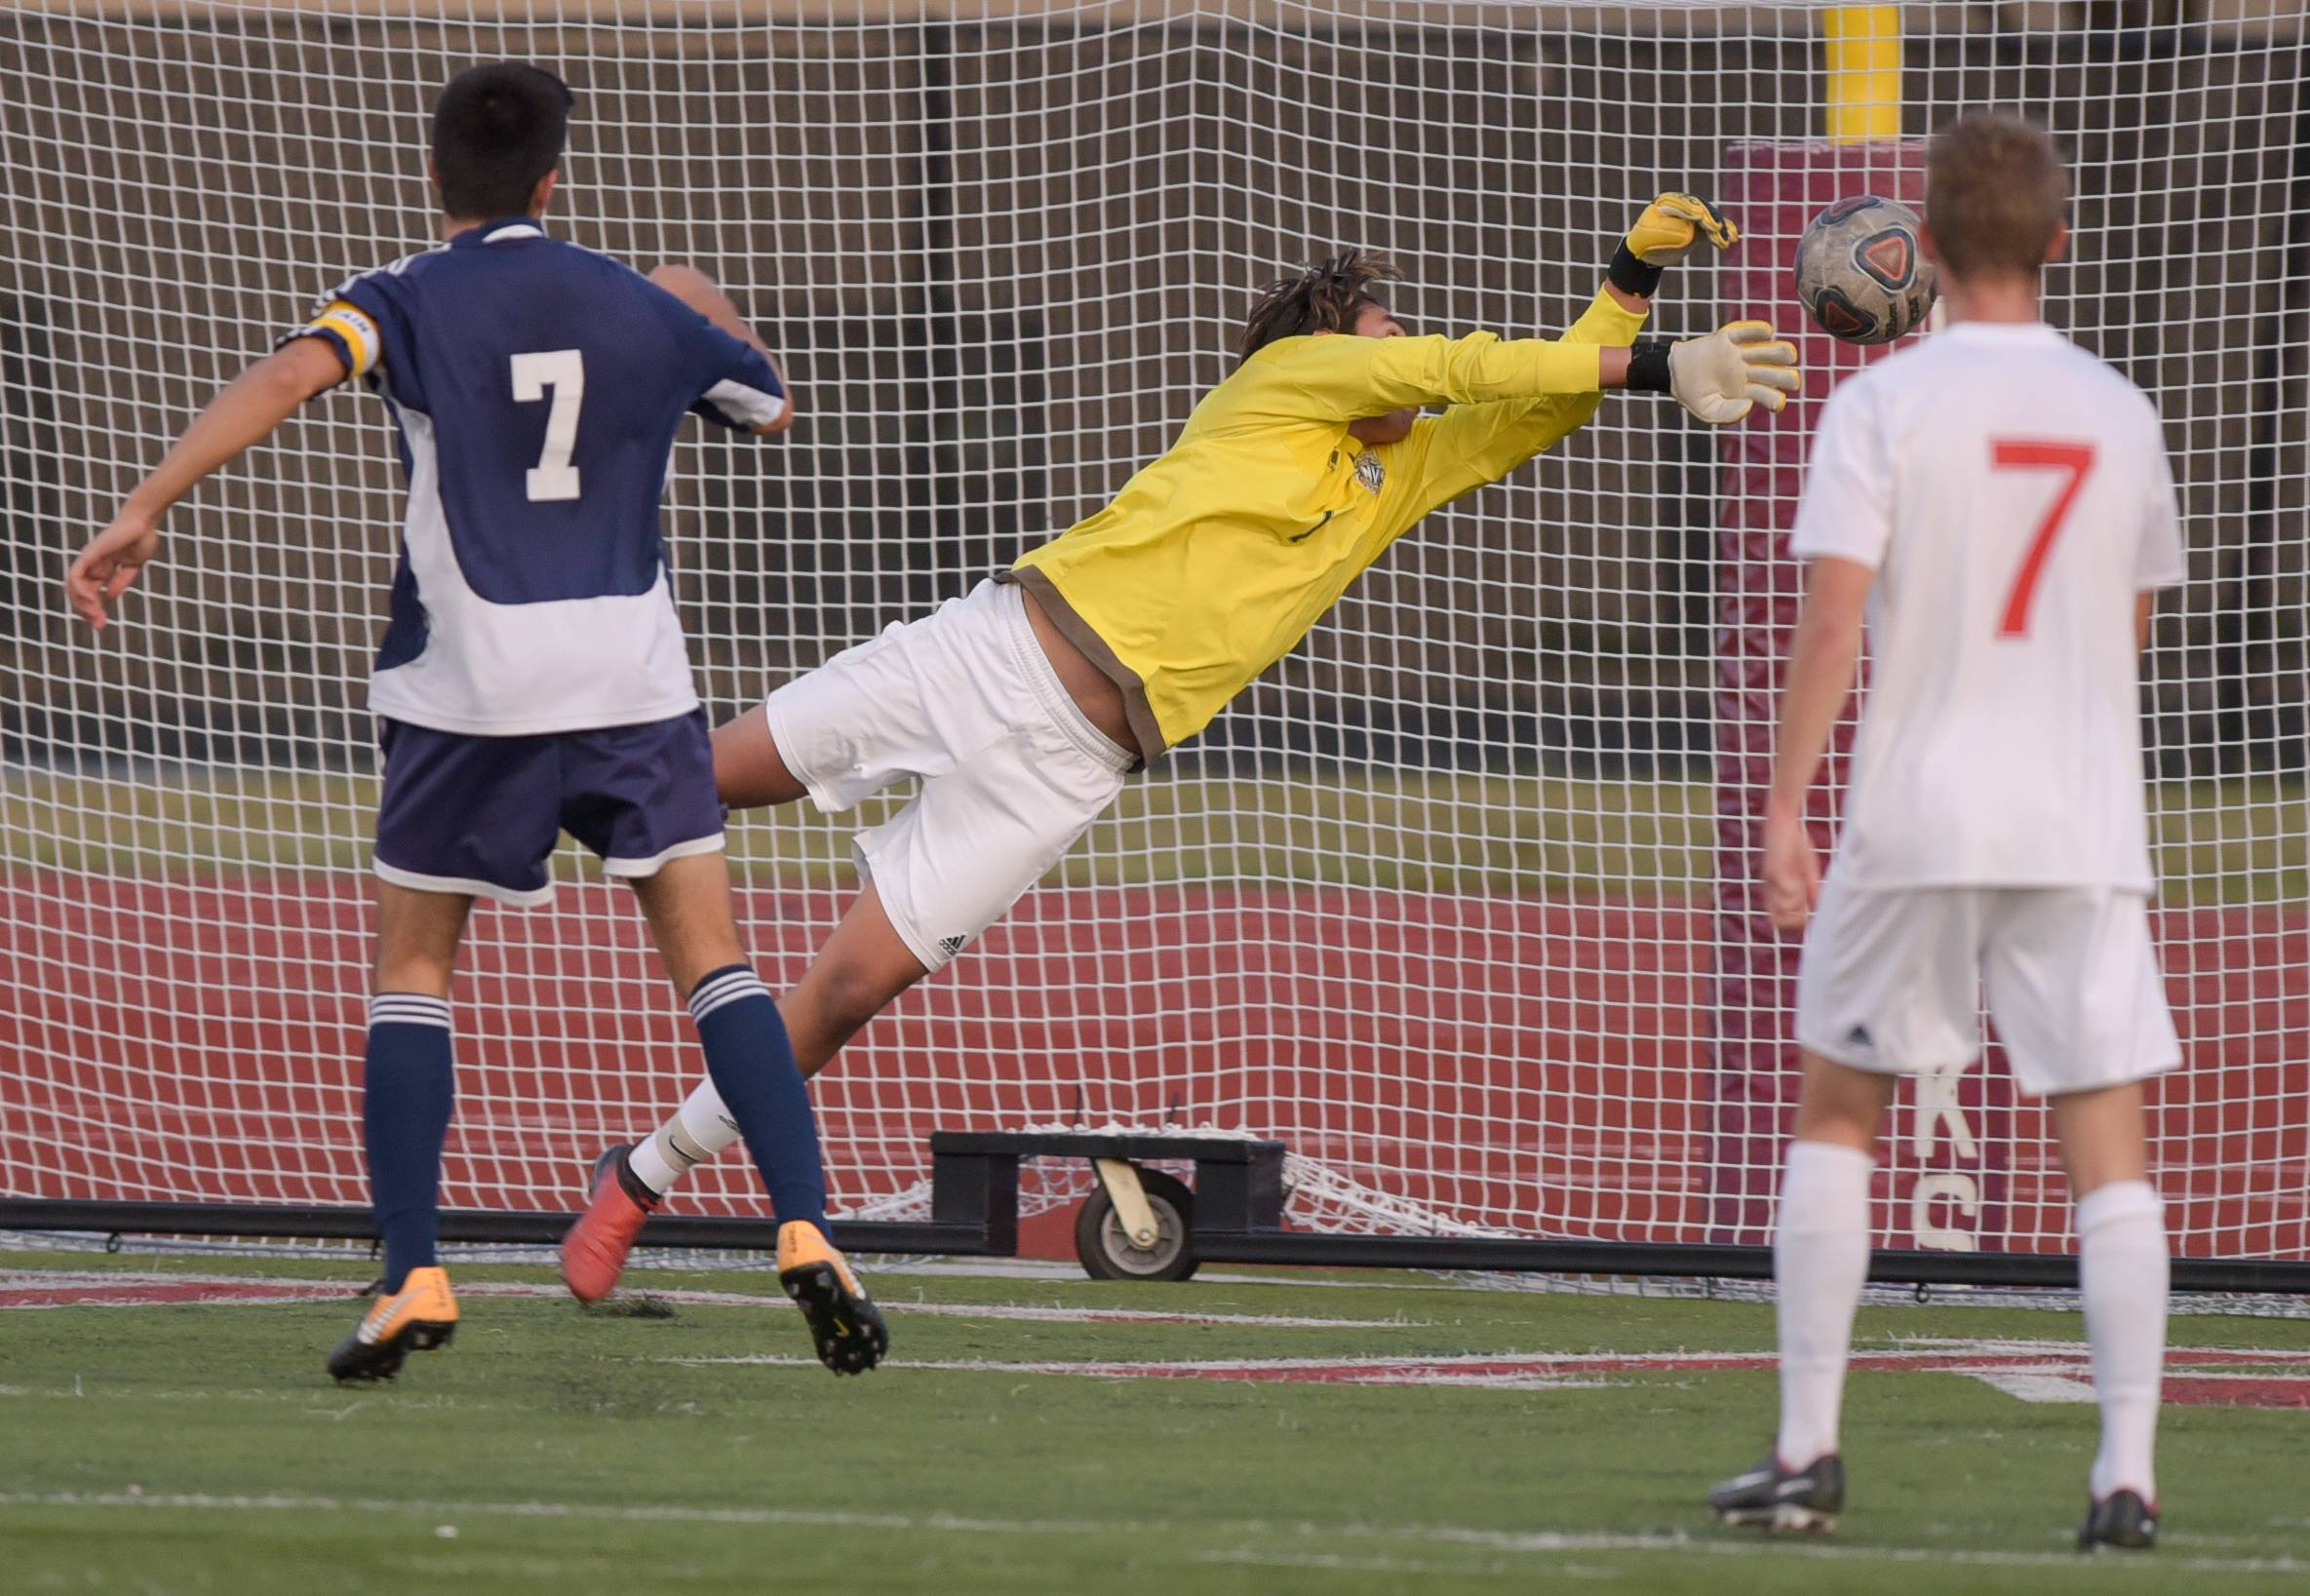 Neuqua Valley's Dylan Soto (1) comes up short on a diving block of a shot on goal by Naperville Central's Cameron Strang (24) during varsity boys soccer in Naperville on September 12, 2017.